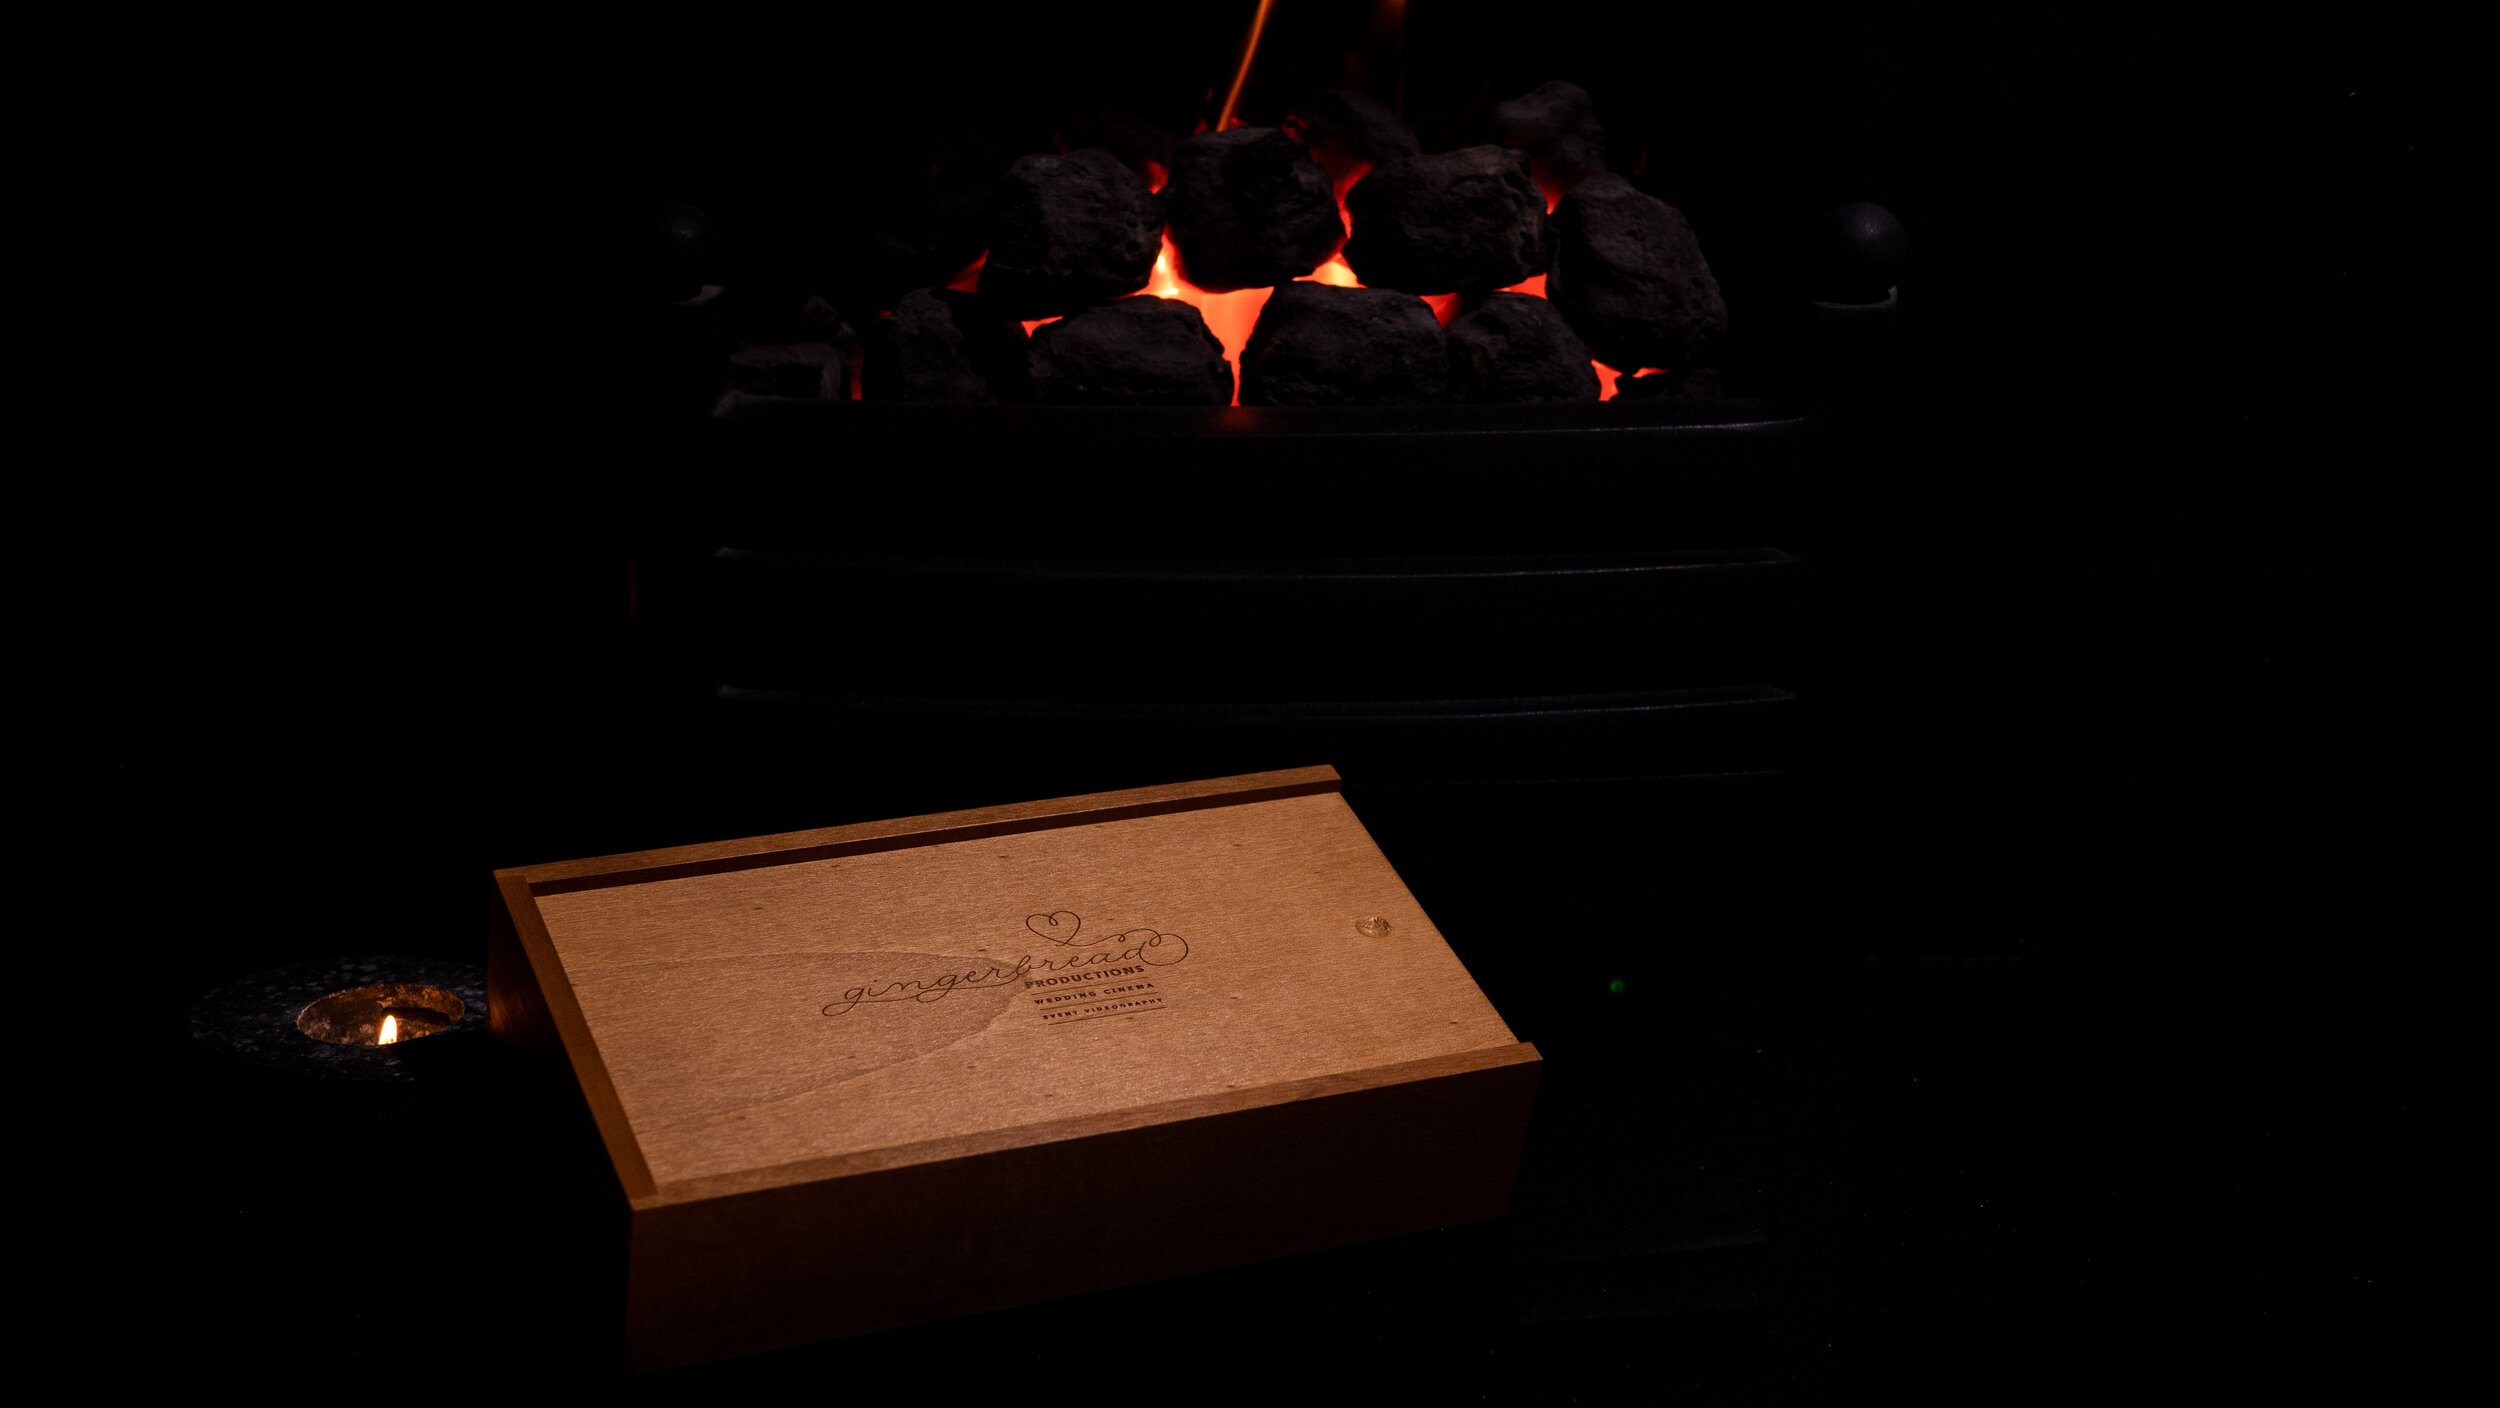 All collections come with a Gingerbread Productions USB presentation box – the perfect way to remember your wedding day! Picture shows rectangular USB box sitting in front of a fire.